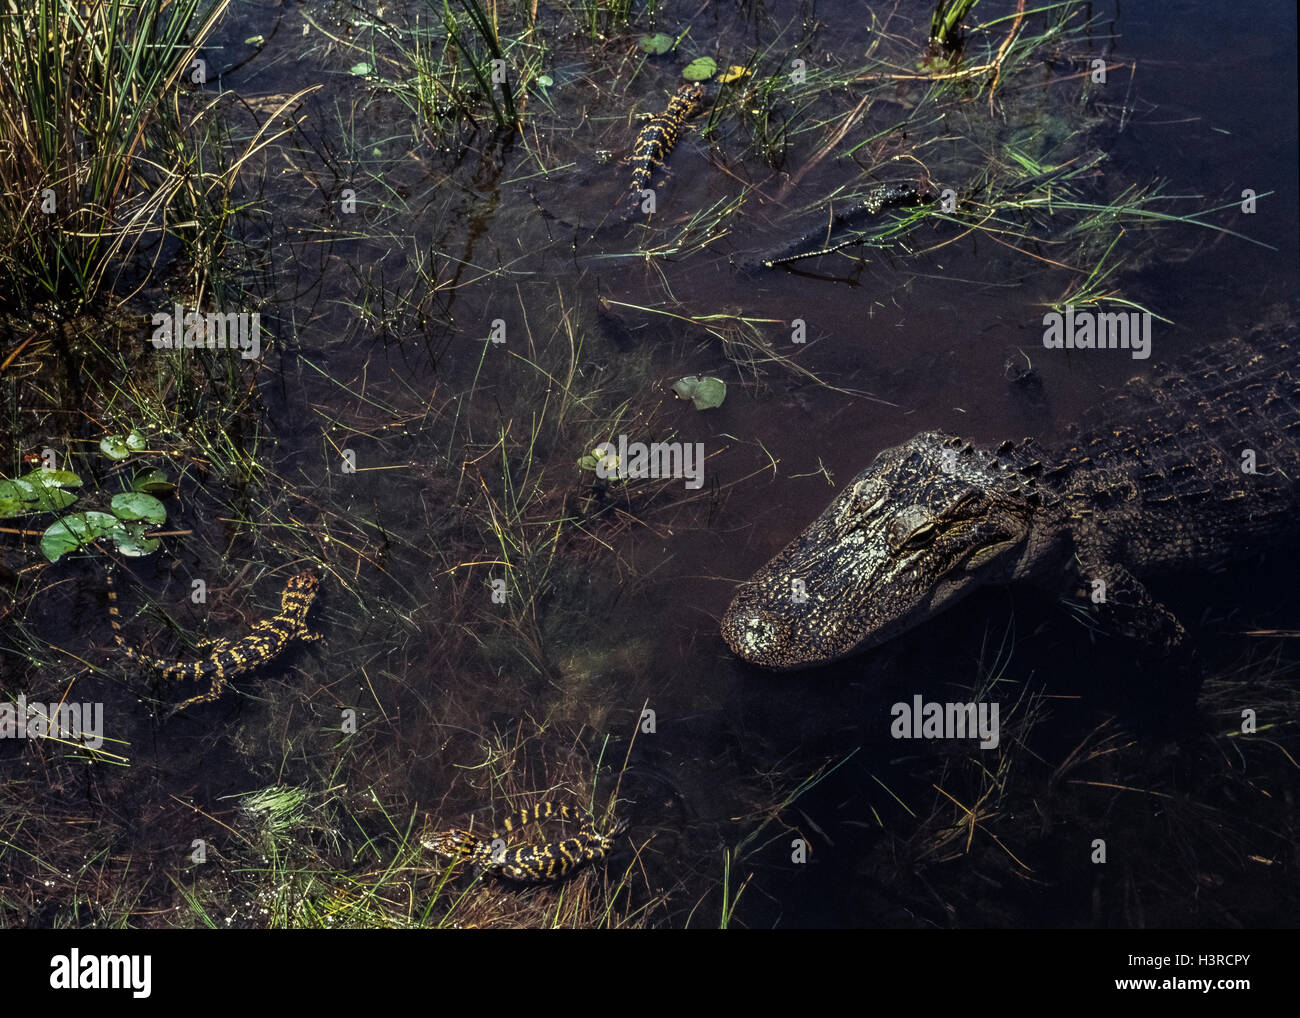 Three newborn baby American alligators stay close to their mother in Everglades National Park in Florida, USA. Baby - Stock Image